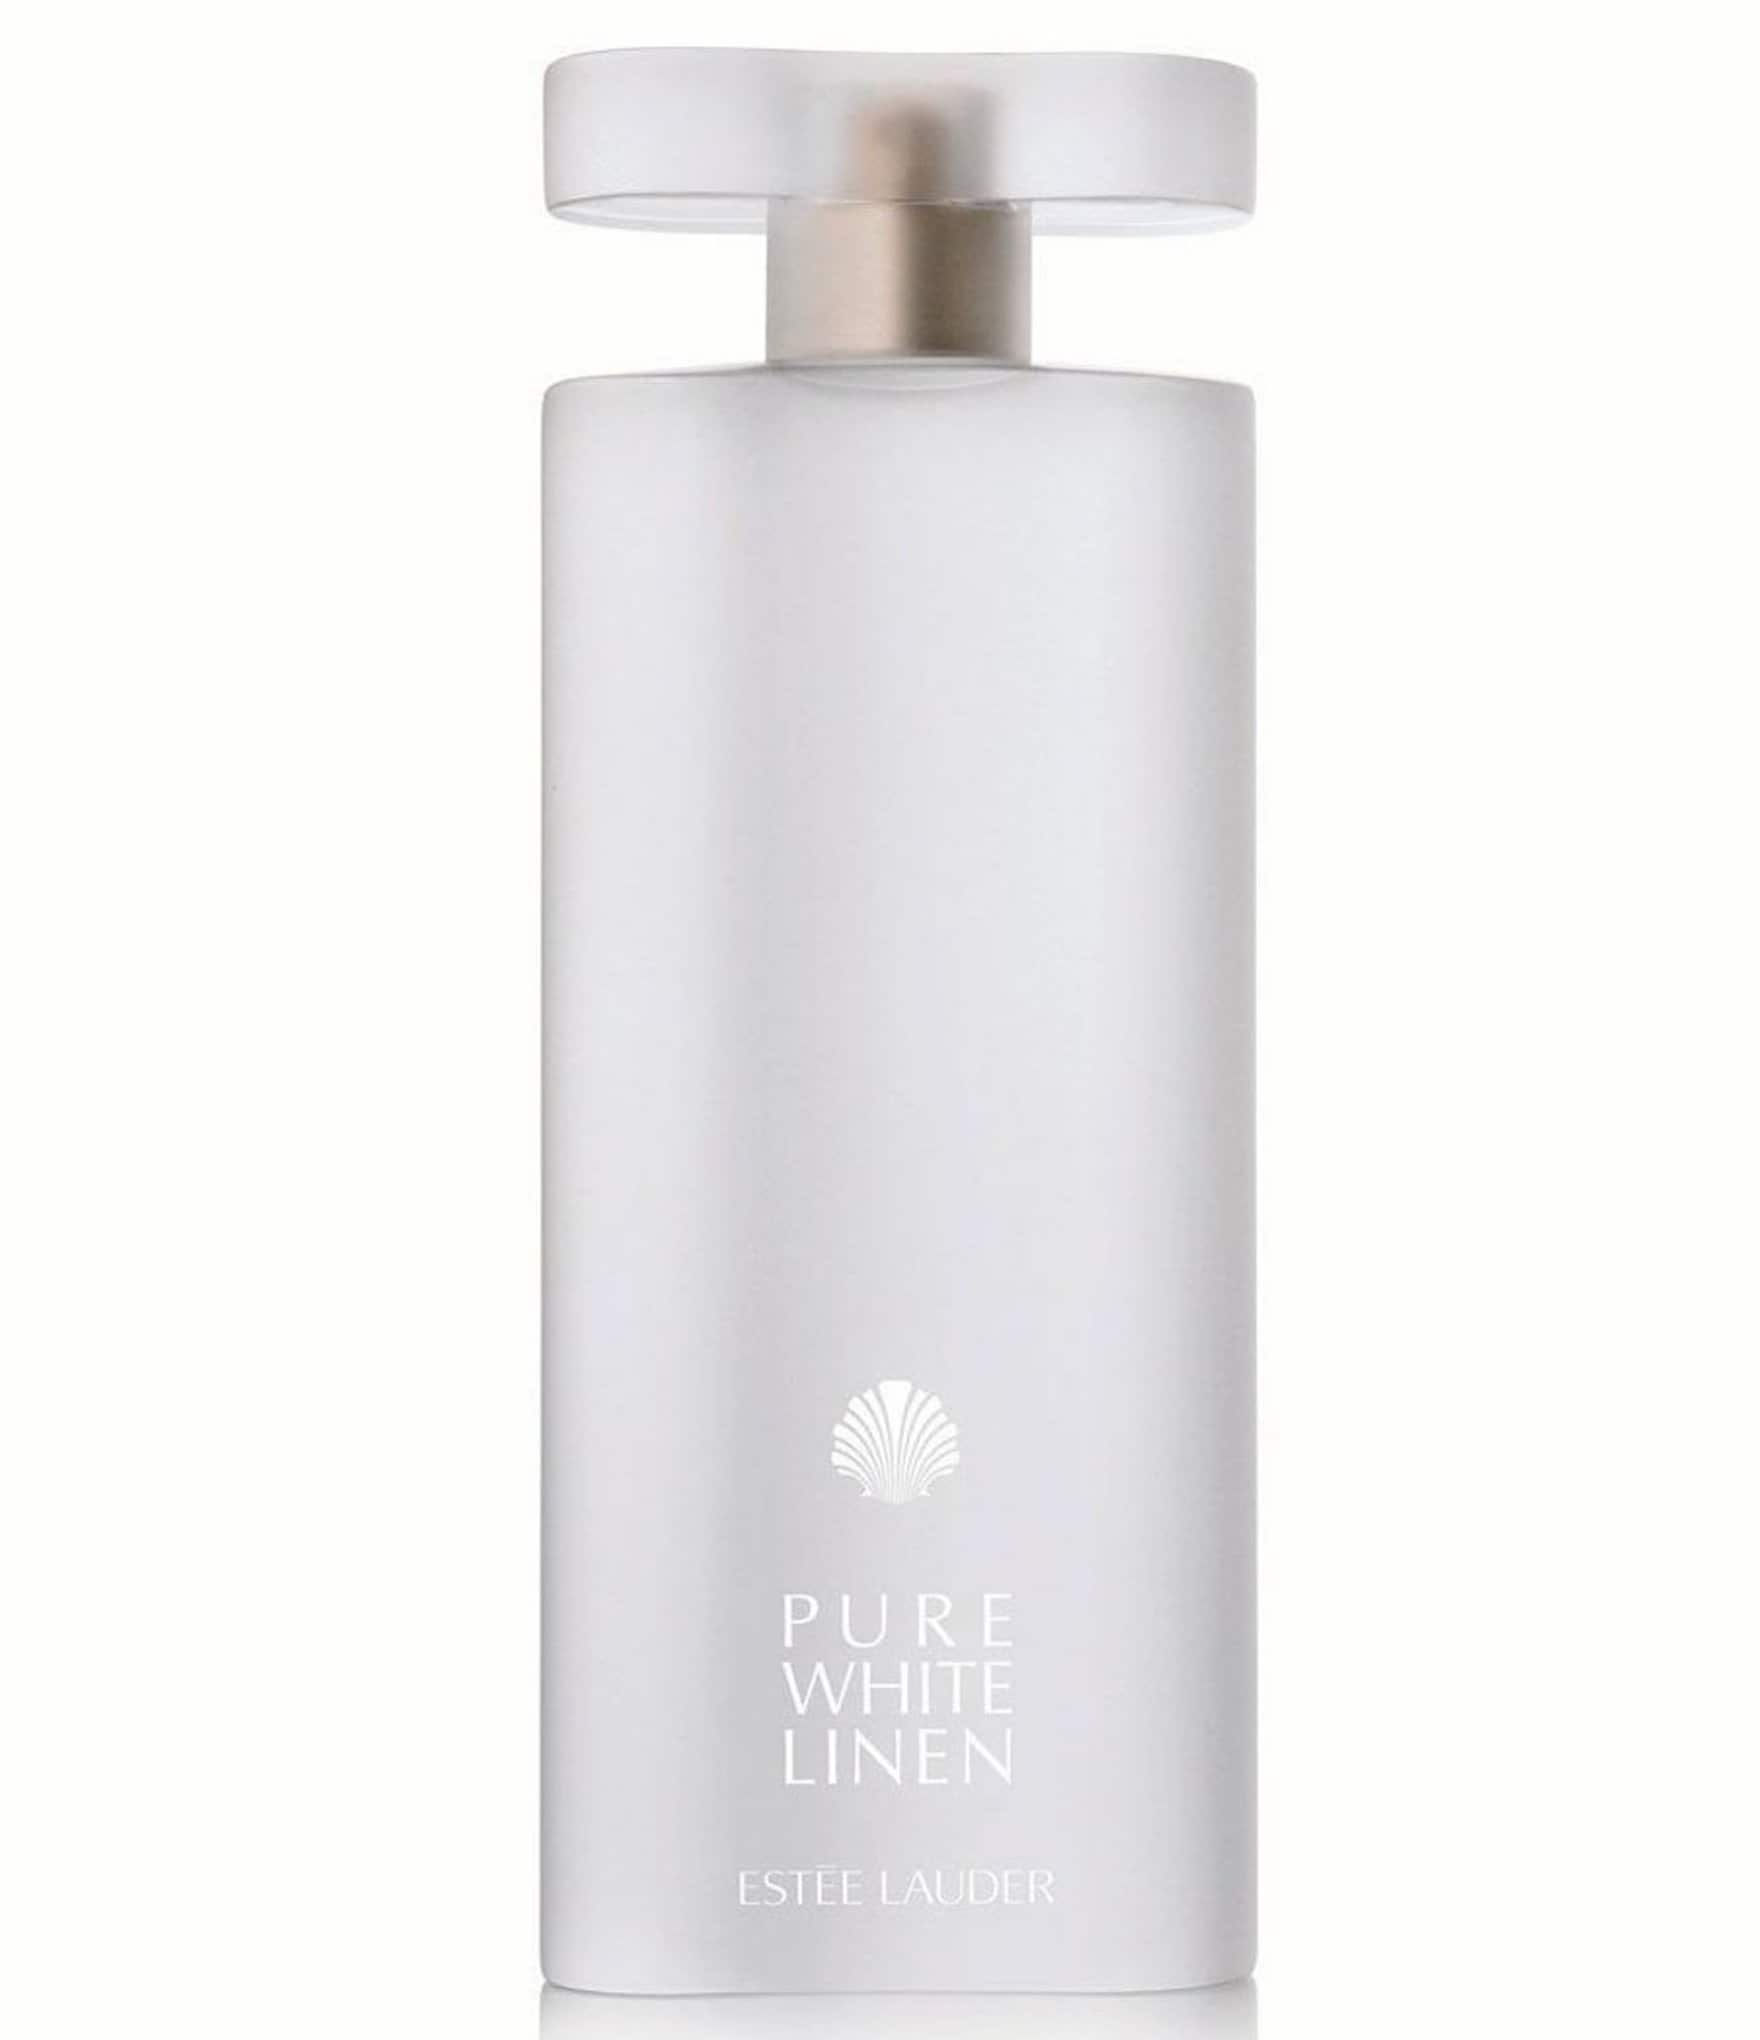 Circle Track Supply >> Estee Lauder Pure White Linen Eau de Parfum Spray | Dillards